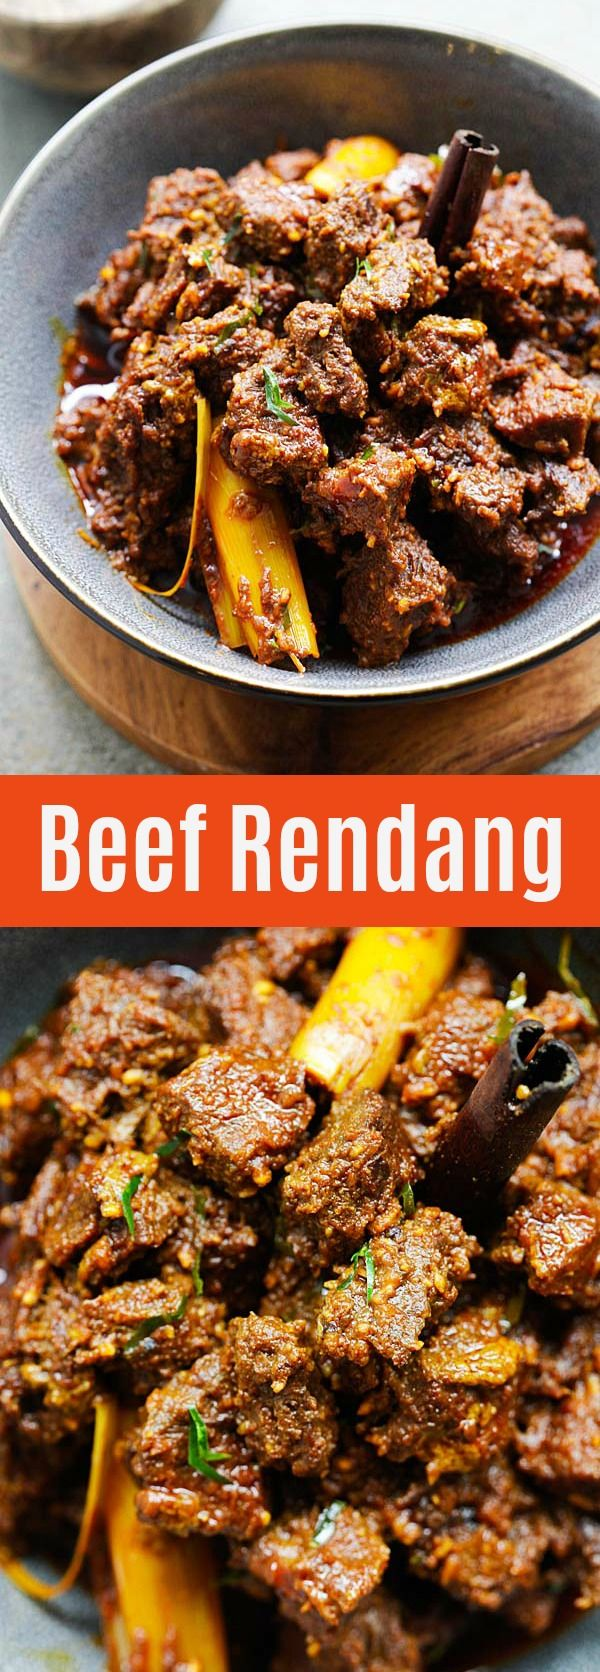 Beef Rendang The Best And Most Authentic Beef Rendang Recipe You Will Find Online Spicy Rich And Cream Beef Rendang Recipe Beef Recipes Indian Food Recipes